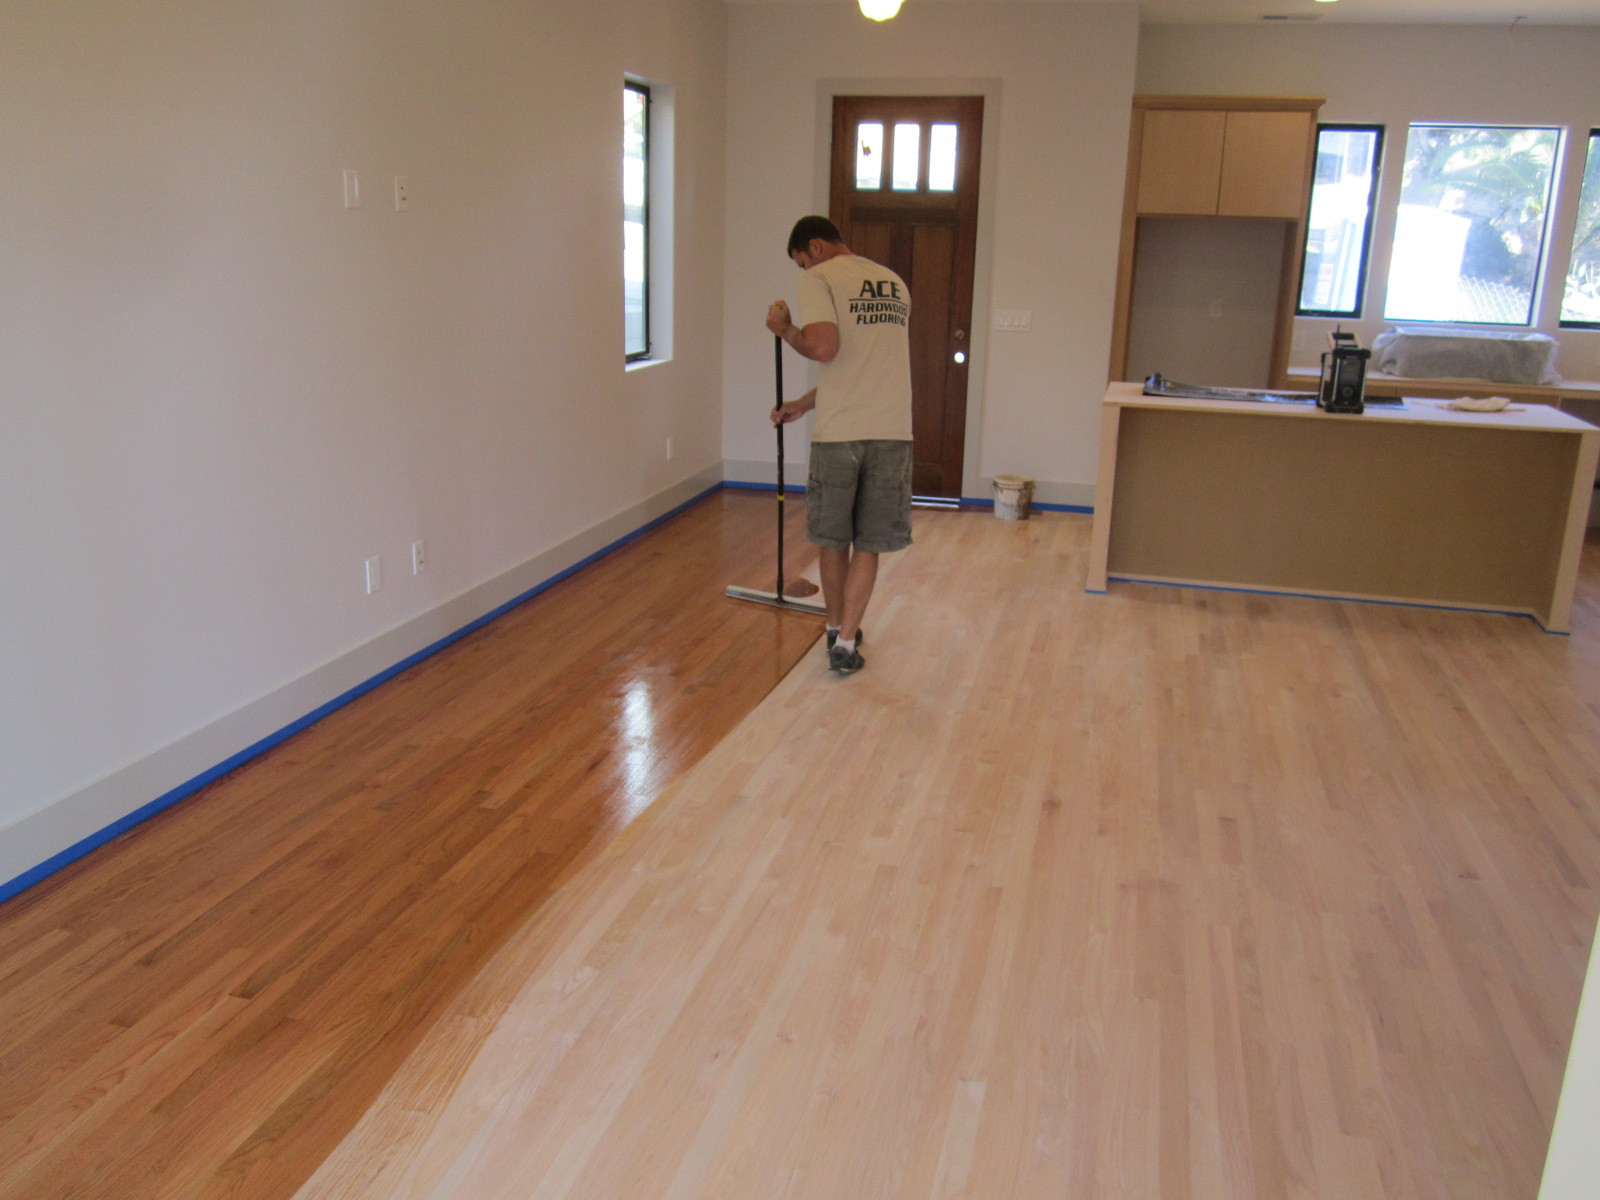 hardwood floor restoration orlando of hardwood floor refinishing richmond va hardwood flooring pertaining to gallery of hardwood floor refinishing richmond va hardwood flooring professionals that you can count